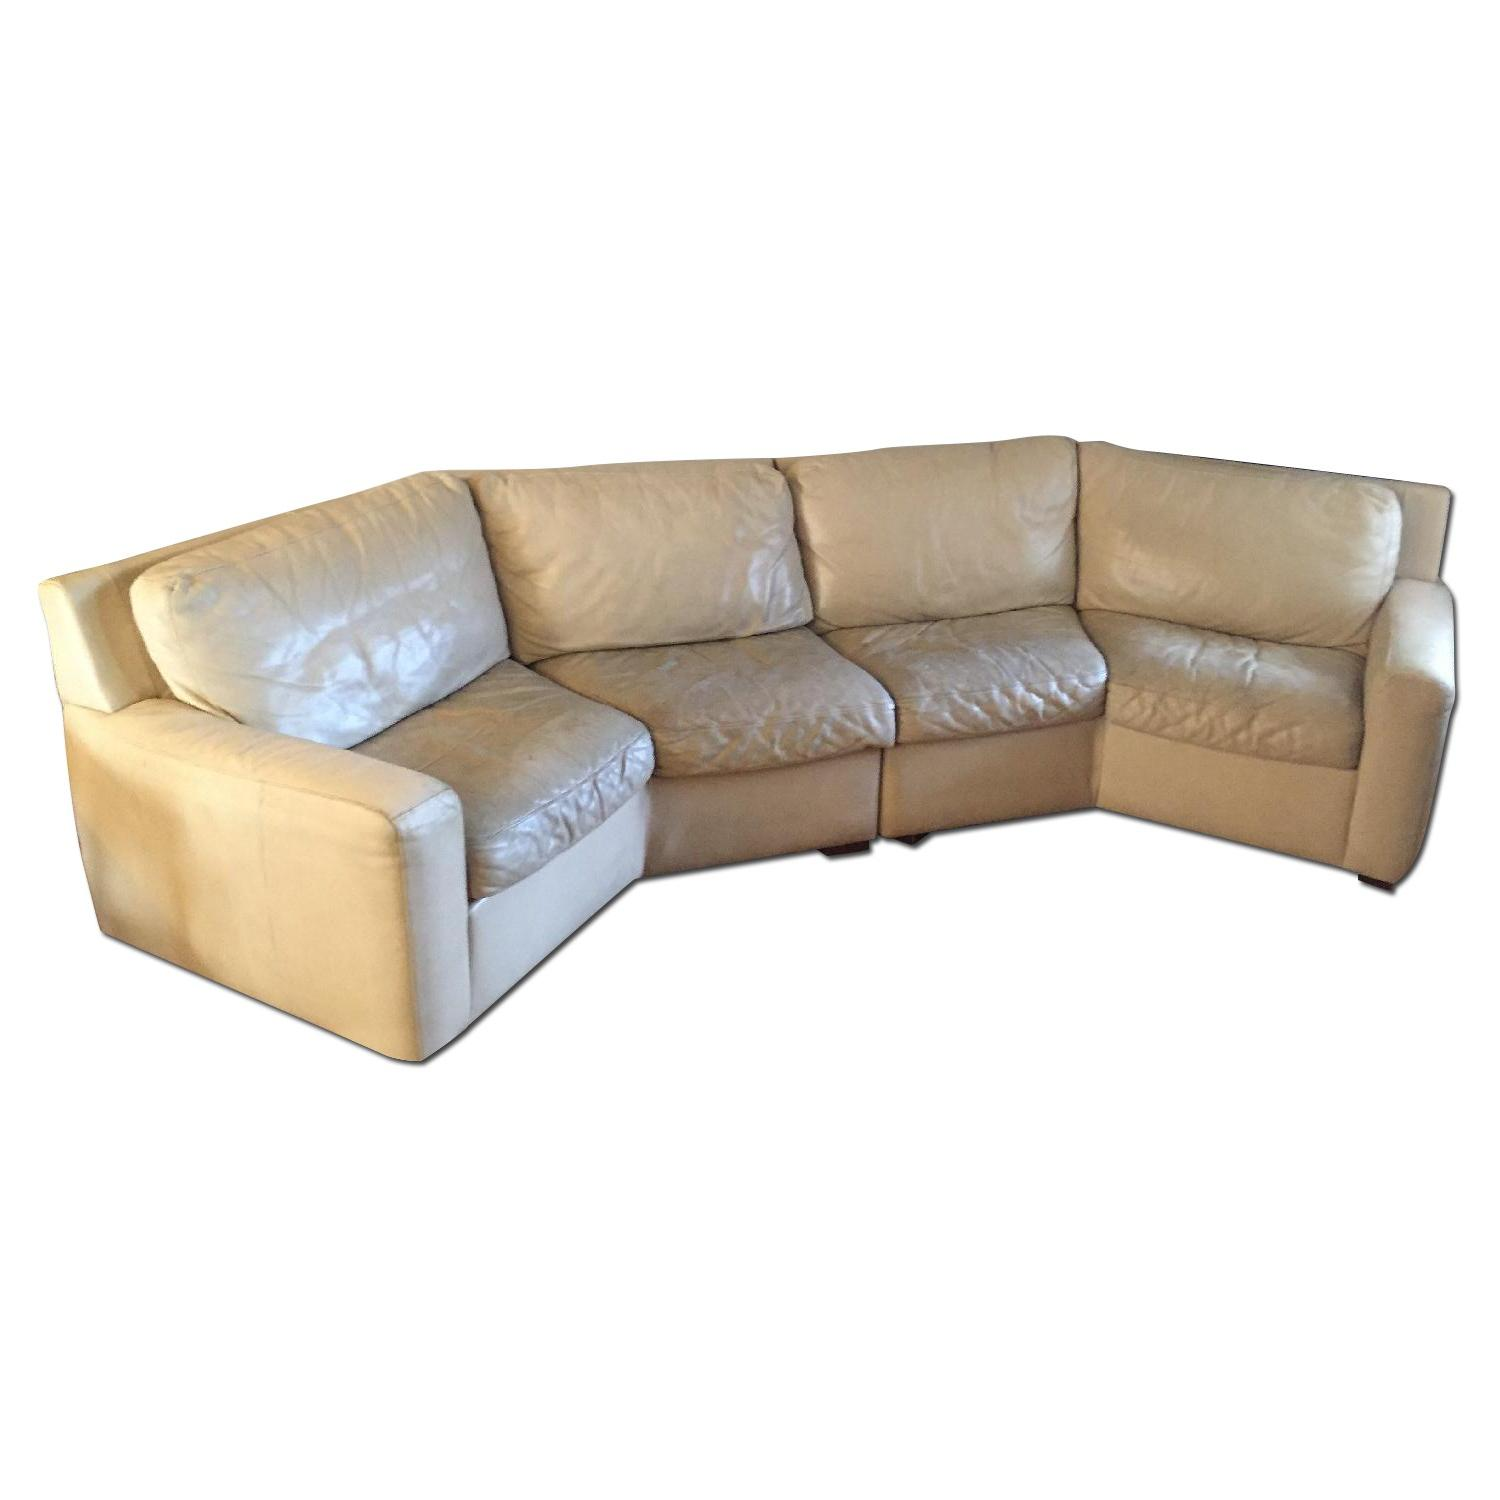 American Leather Curved 2-Piece Sectional - image-0